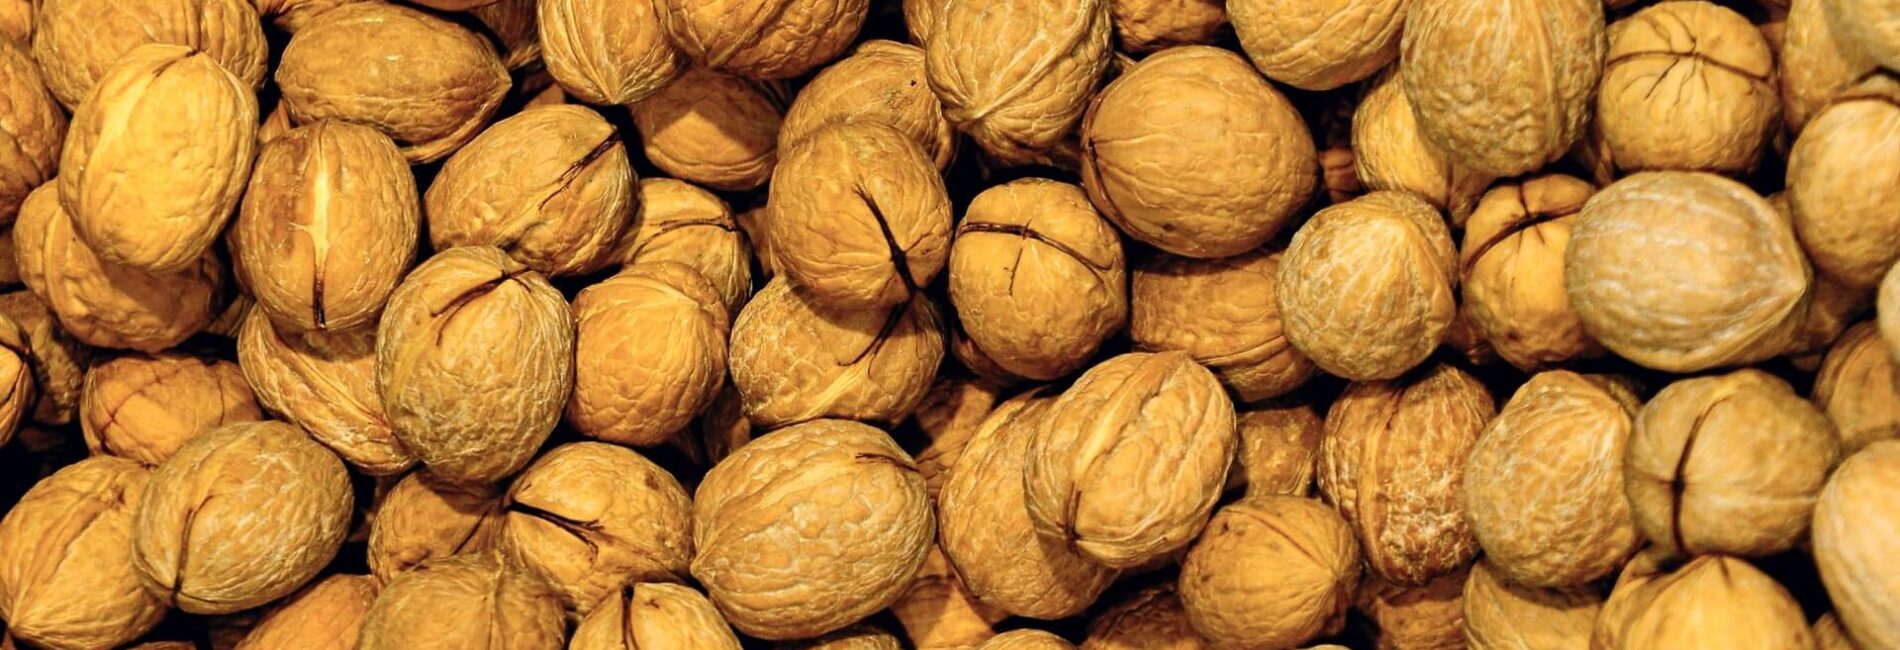 Ideas for Using Leftover Nuts in the Shell